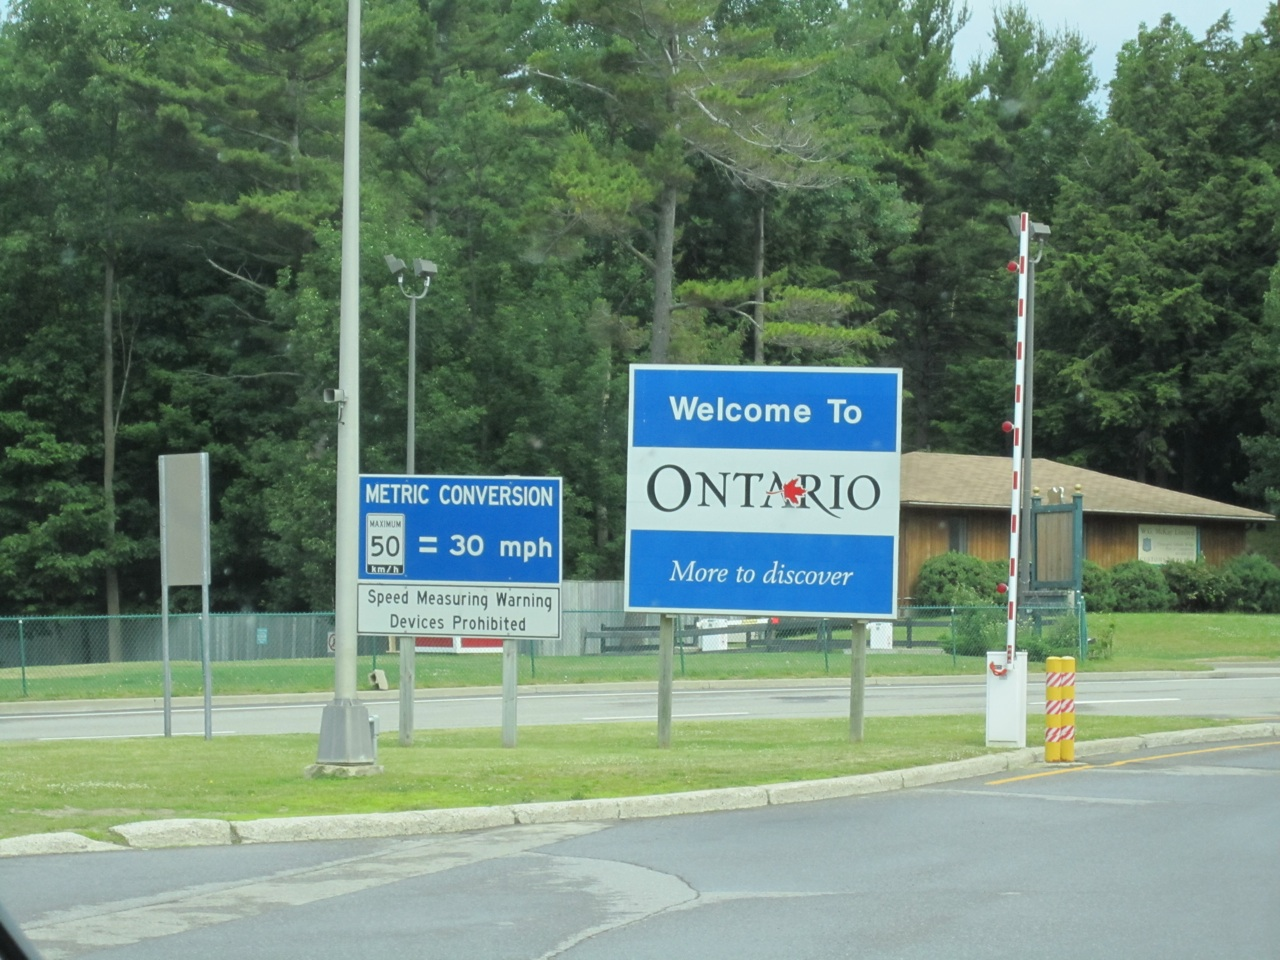 Ontario, Canada Sign Once Through The Border Crossing